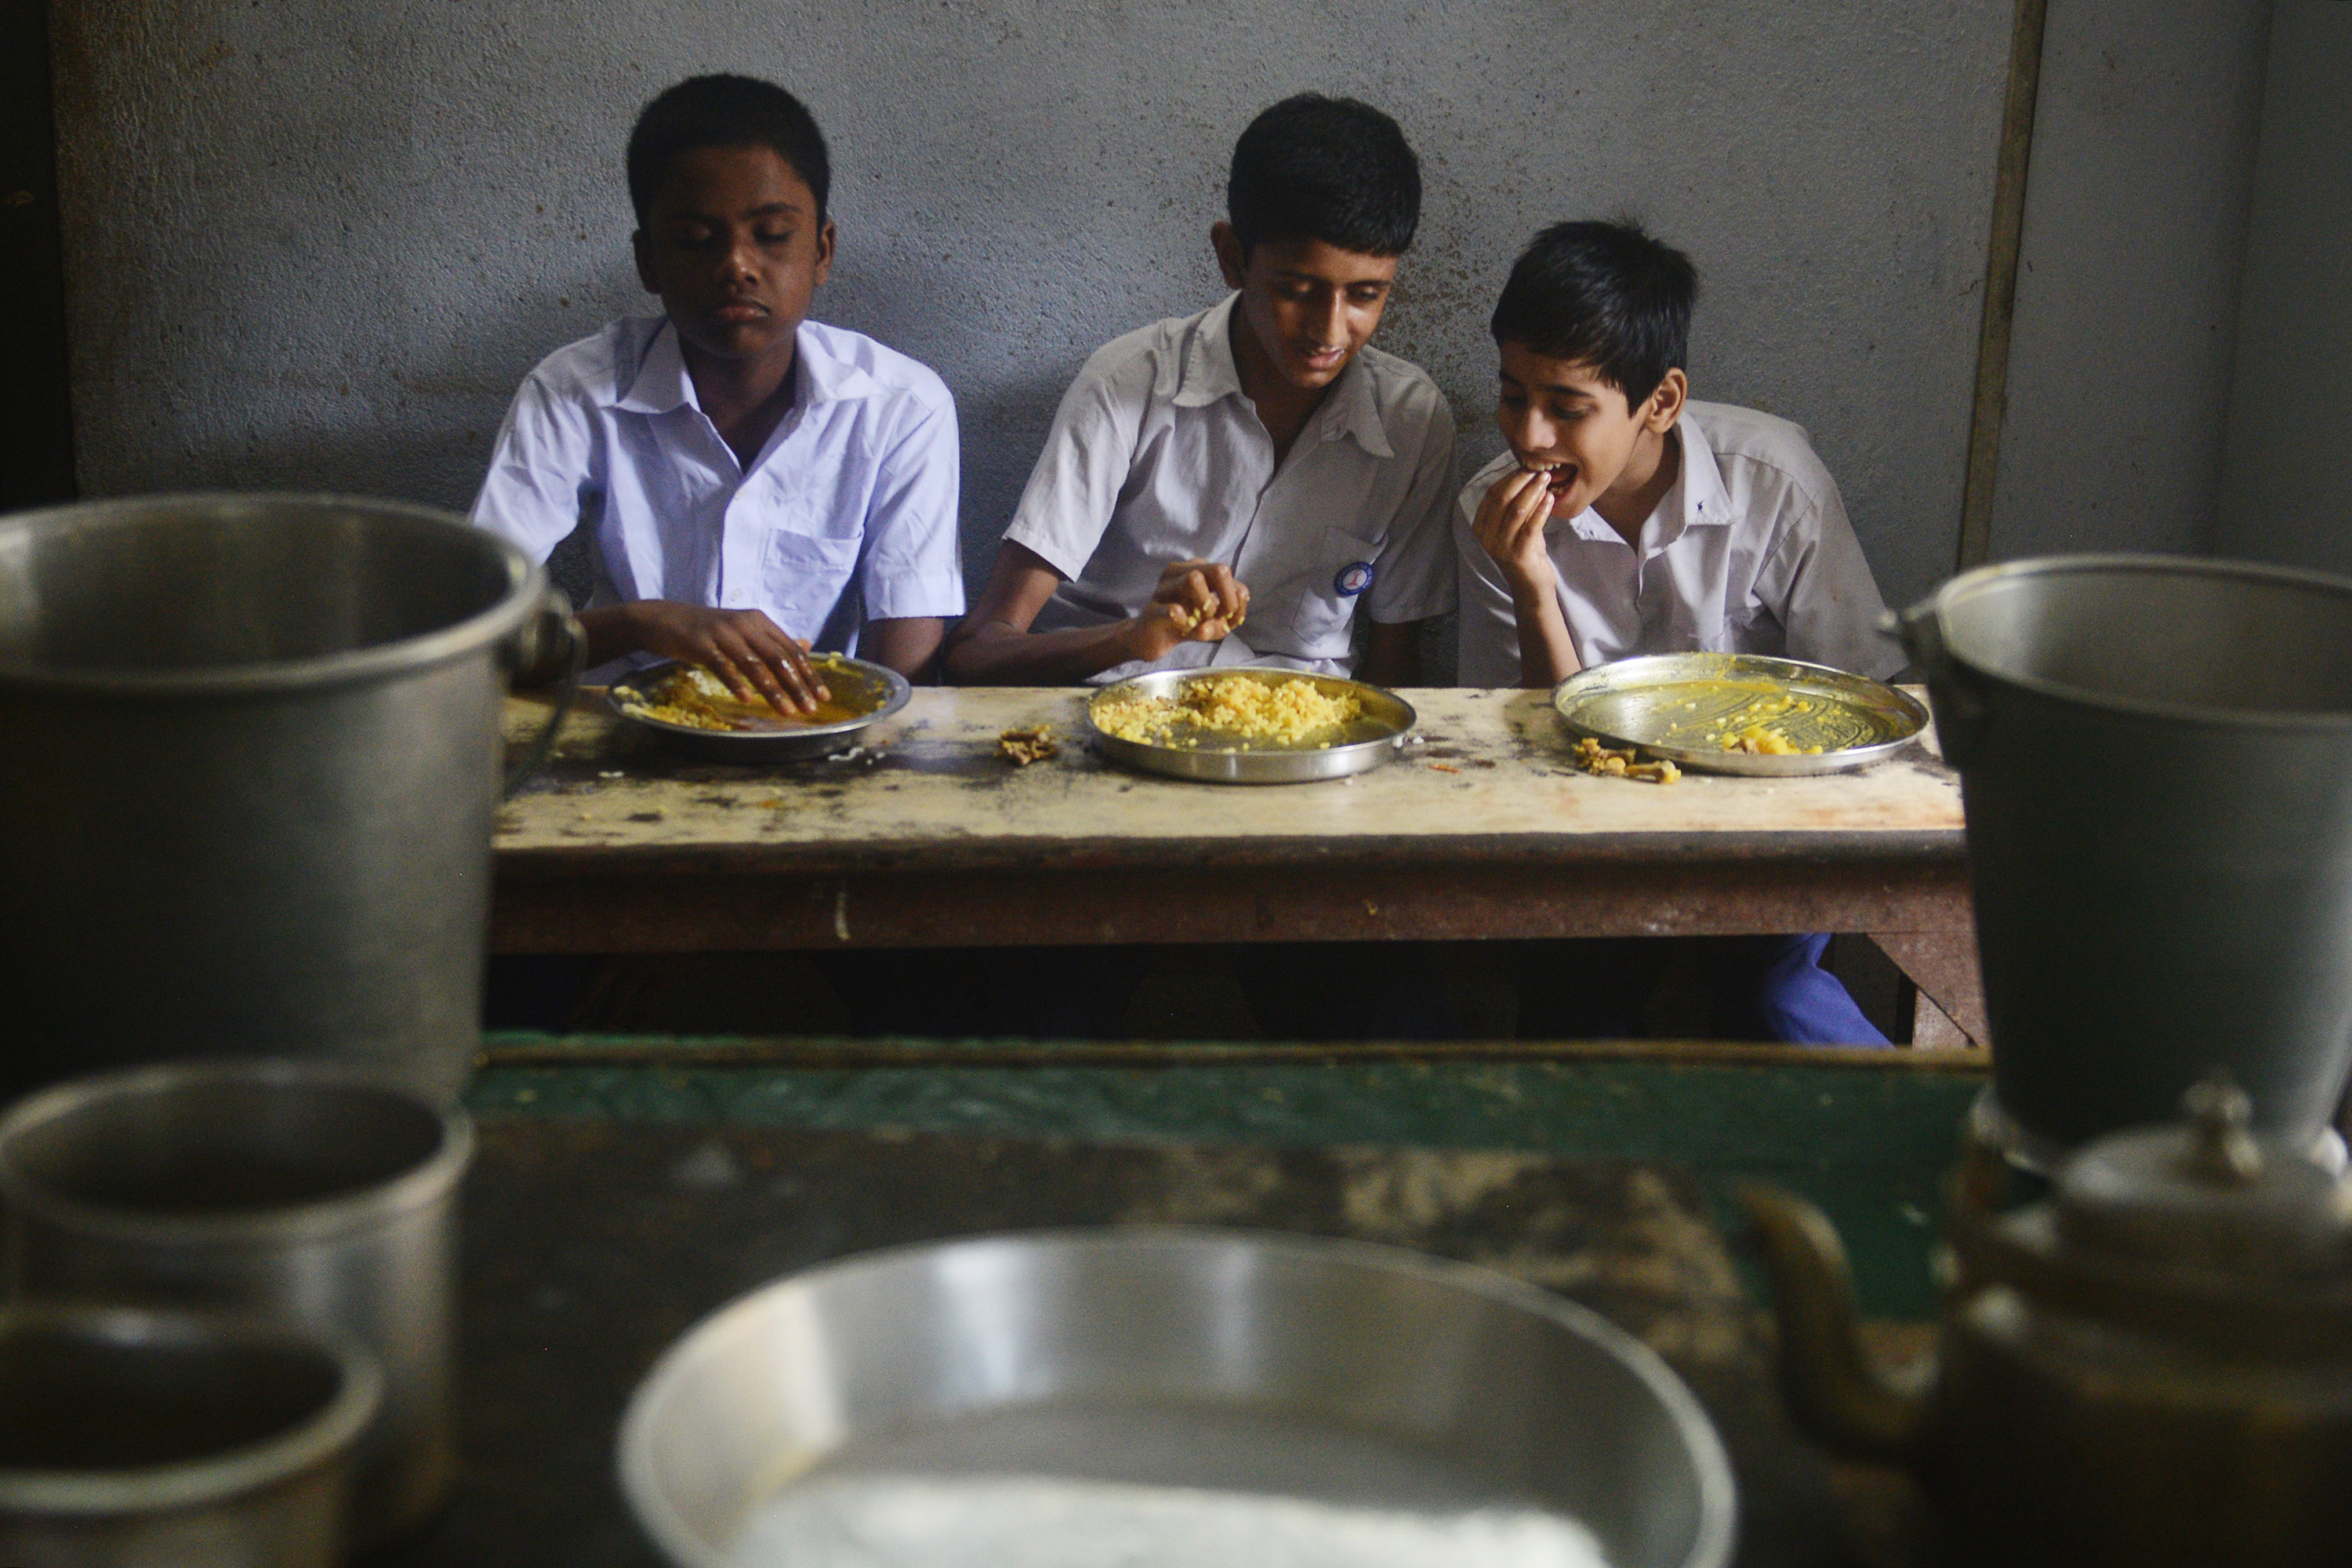 Most blind schools provide mid day meals for their students. Credit: Sutirtha Chatterjee